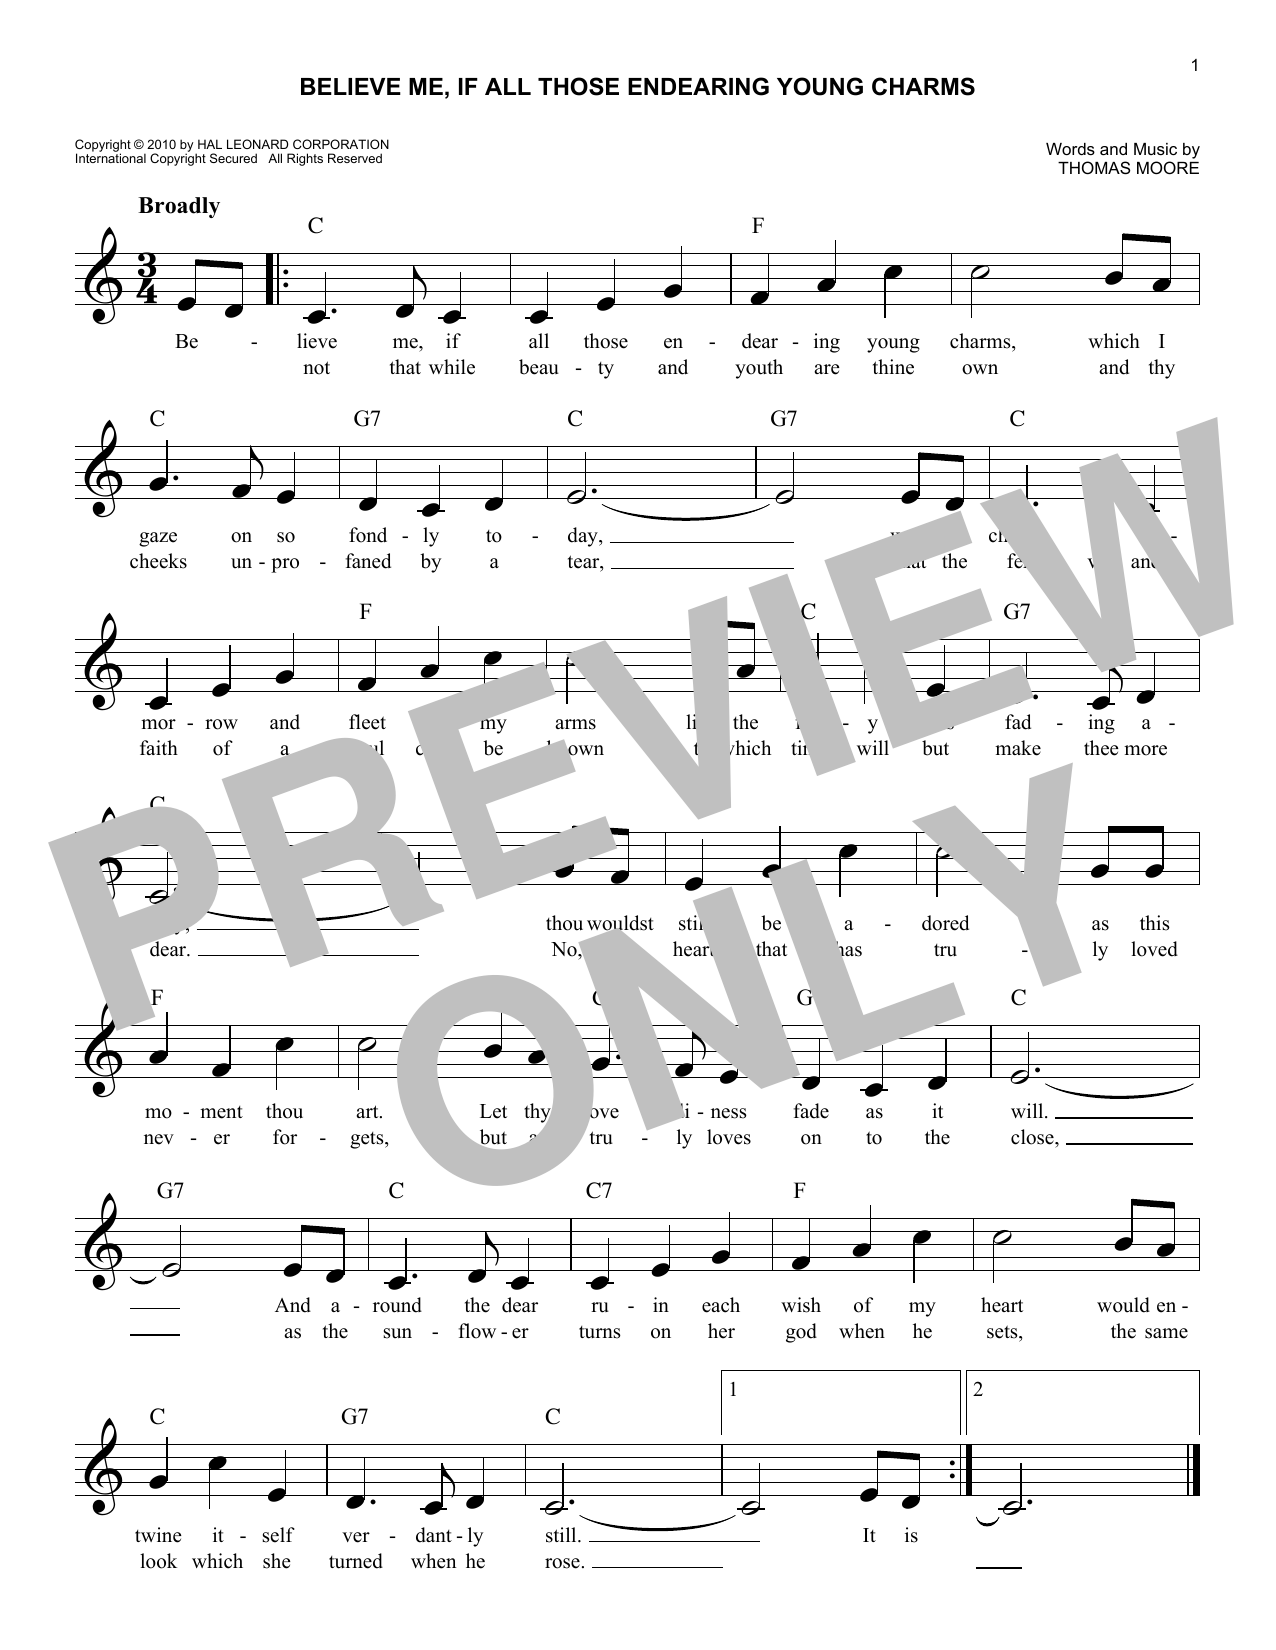 Believe Me, If All Those Endearing Young Charms Sheet Music